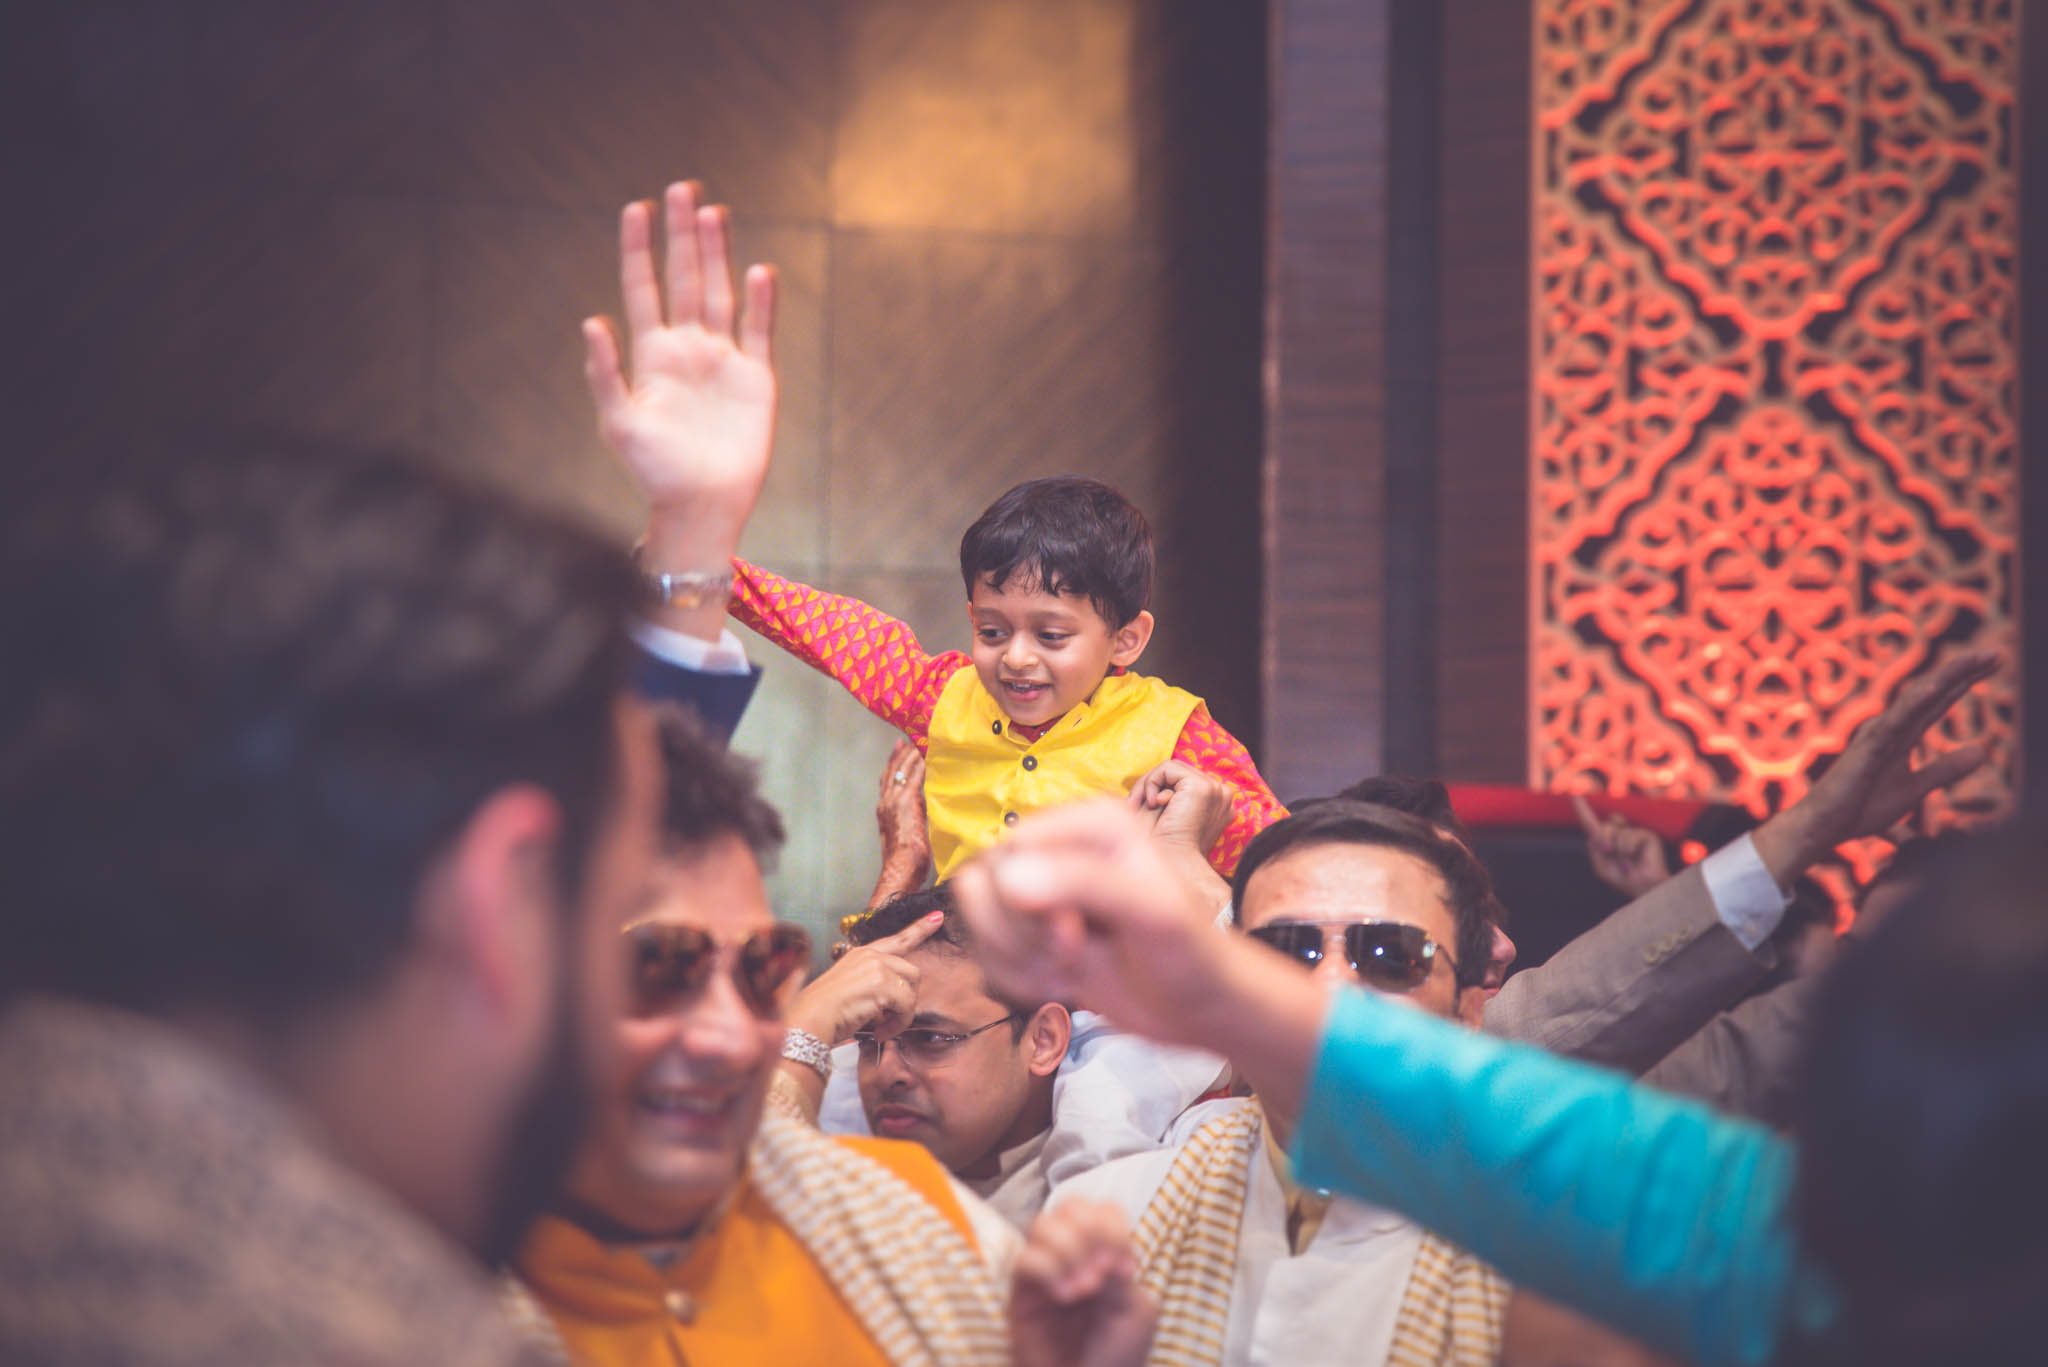 StRegis-Palladium-Mumbai-Candid-Wedding-Photography-22